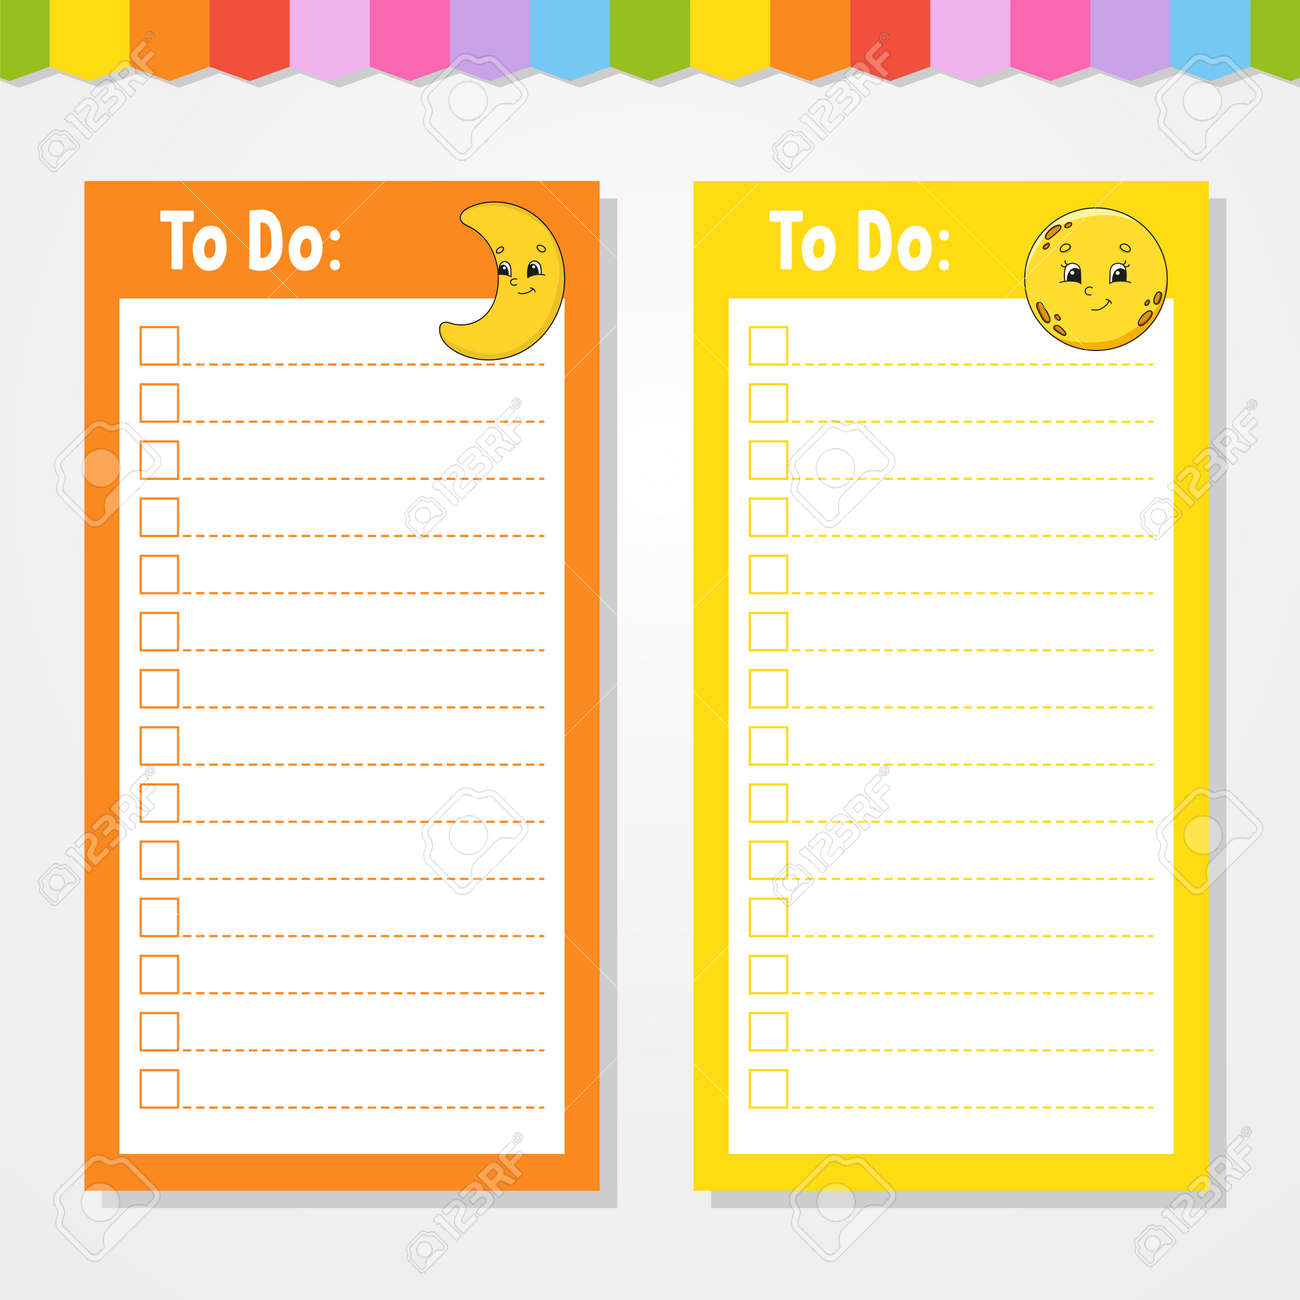 To do list for kids. Empty template. Crescent and moon. The rectangular shape. Isolated color vector illustration. Funny character. Cartoon style. For the diary, notebook, bookmark. - 169599772